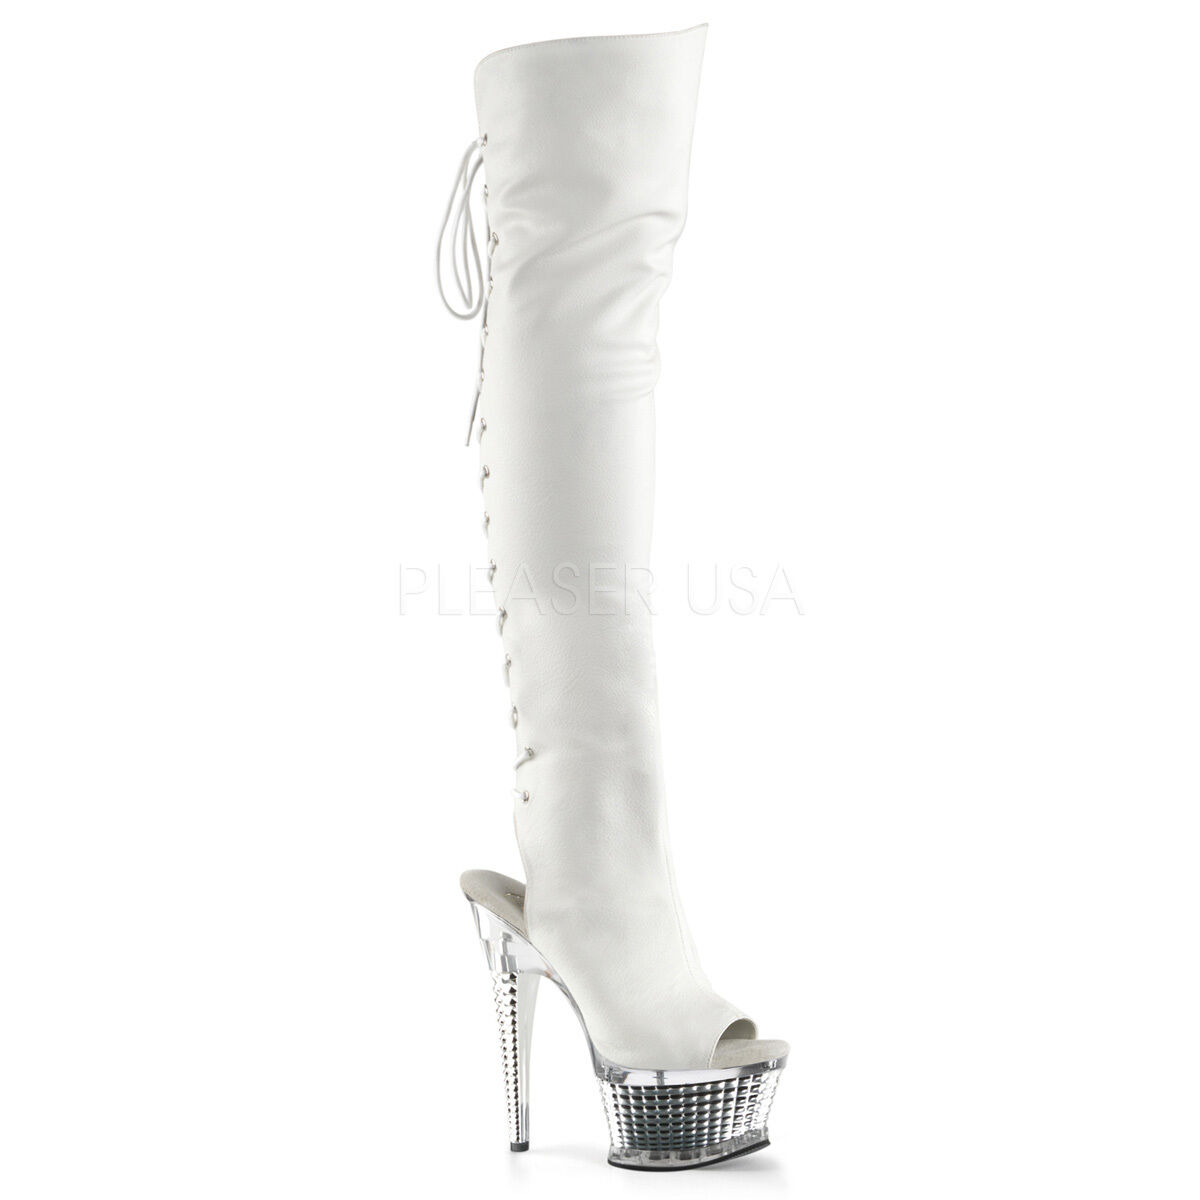 Pleaser ADORE-3019 ADORE-3019 ADORE-3019 BEJEWELED-3019 DELIGHT-3019 ILLUSION-3019 Platform Thigh Boot 6796ab